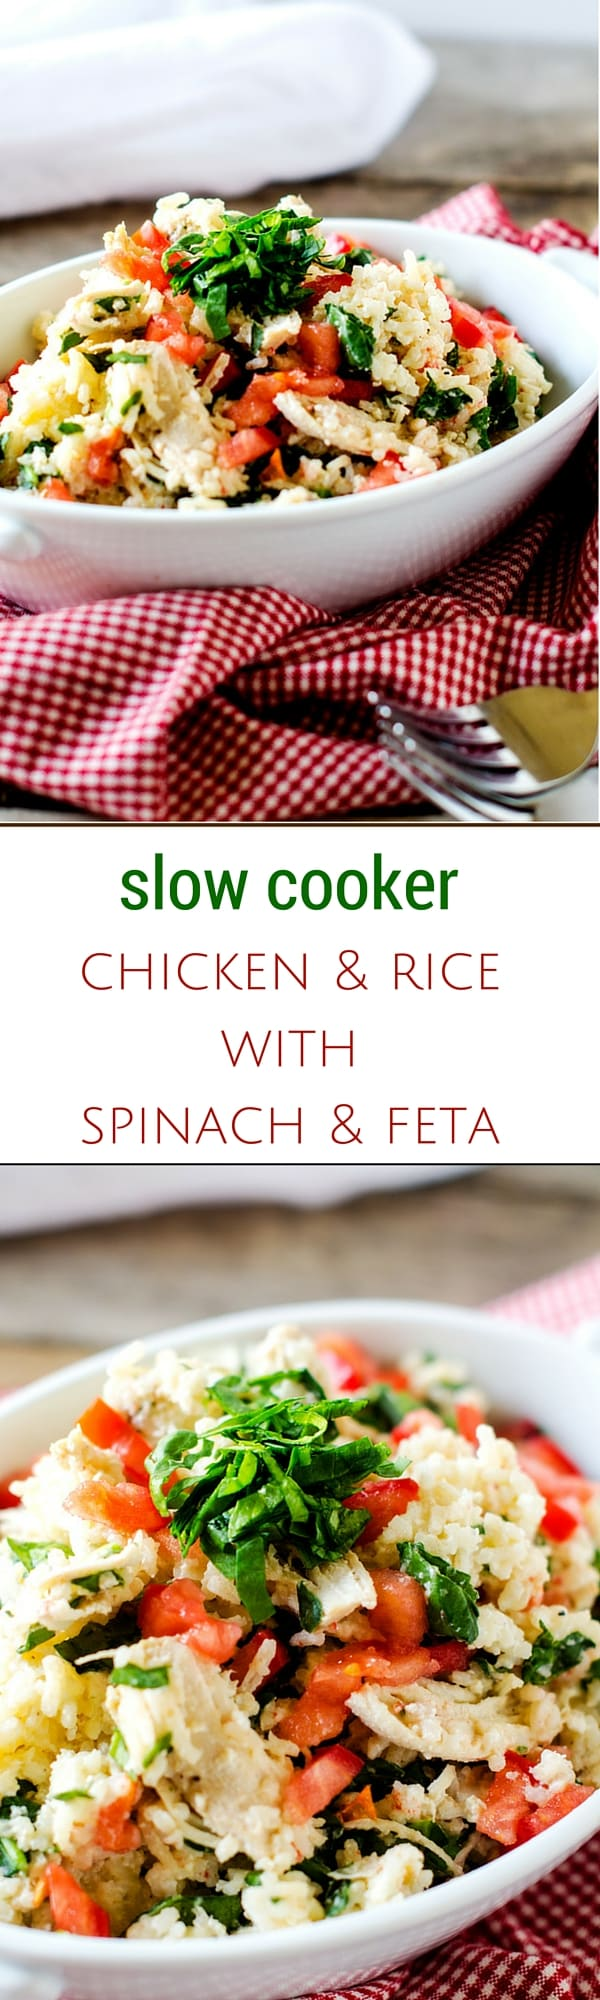 Slow Cooker Chicken & Rice with Spinach & Feta